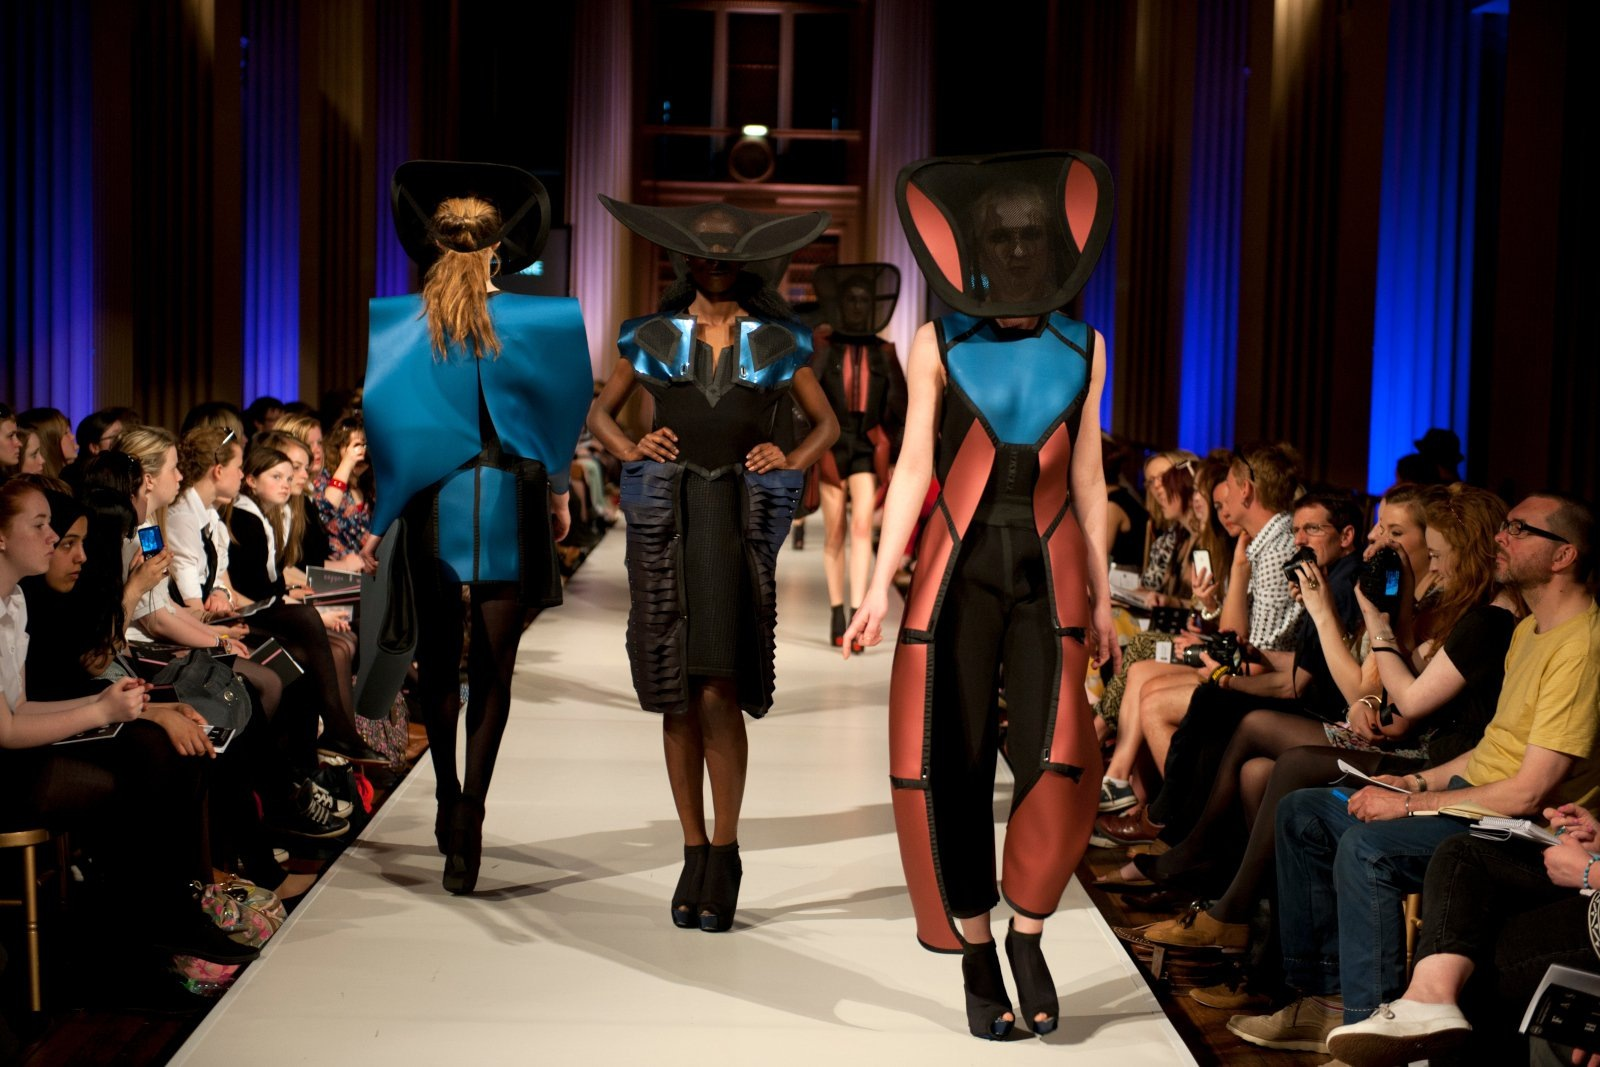 Edinburgh Charity Fashion Show 2021